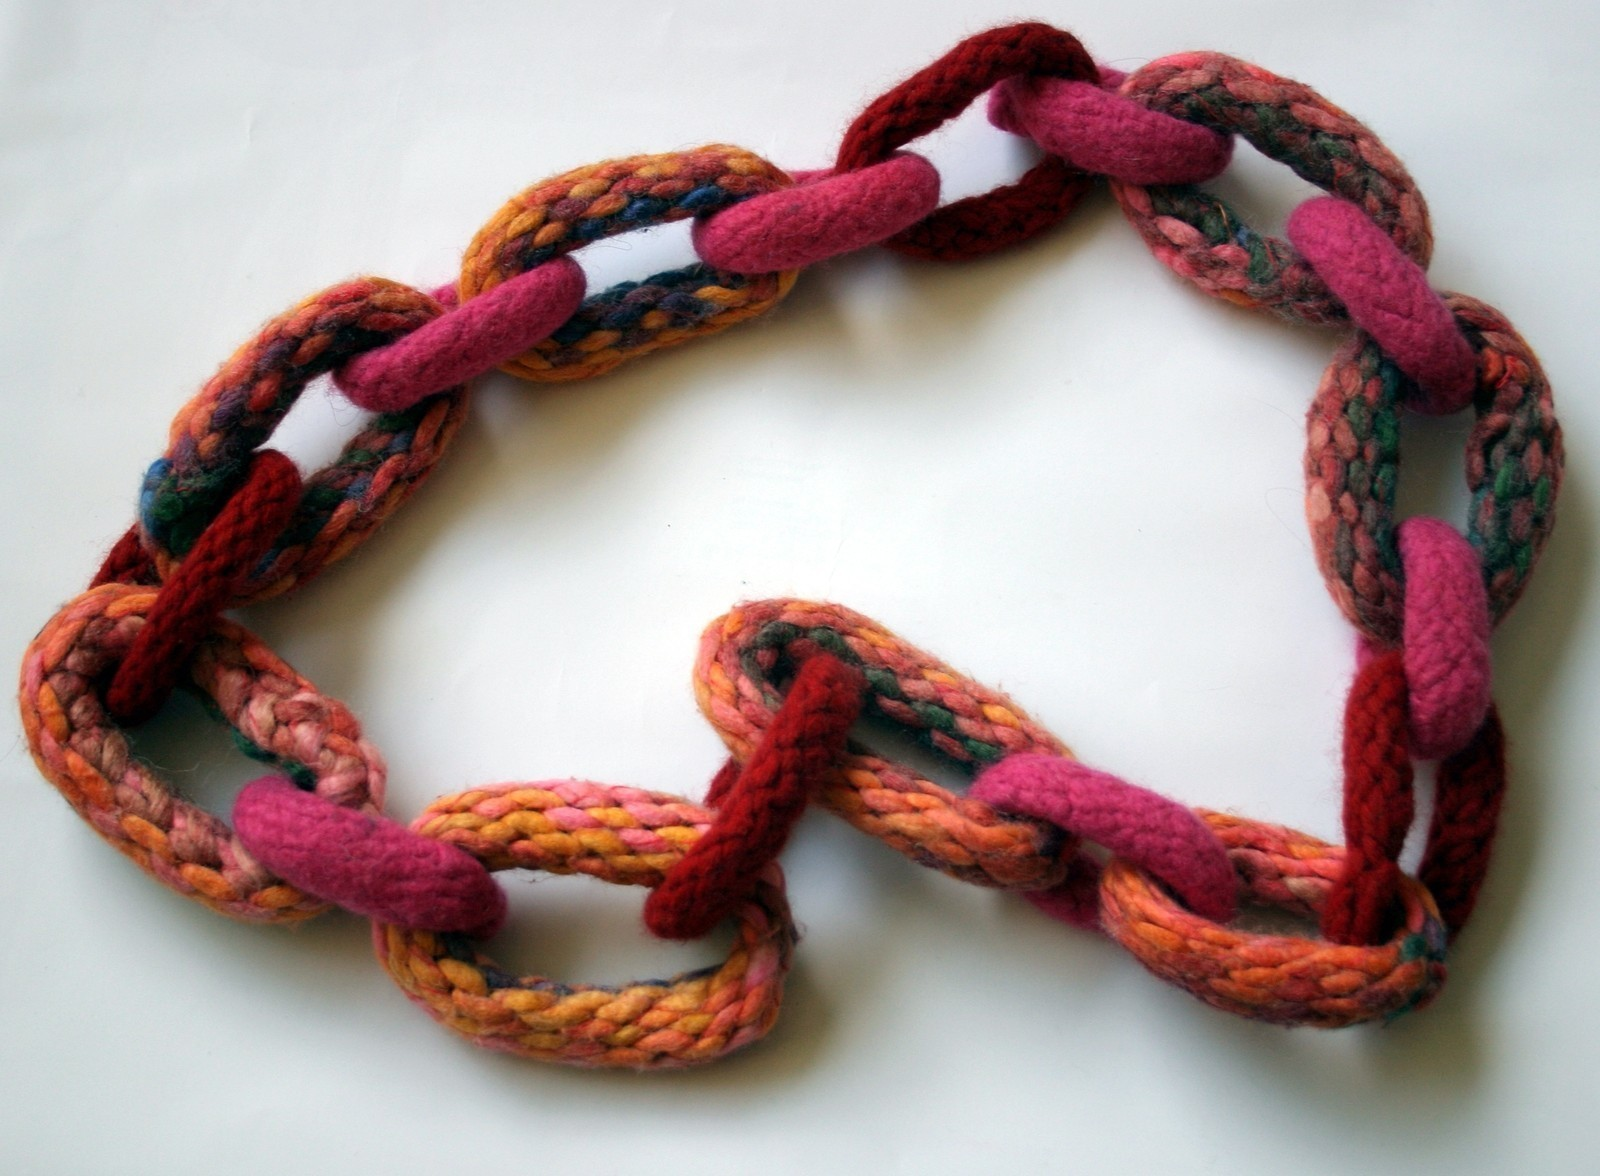 Knitted Chain Necklace 183 How To Knit Or Crochet A Knit Or